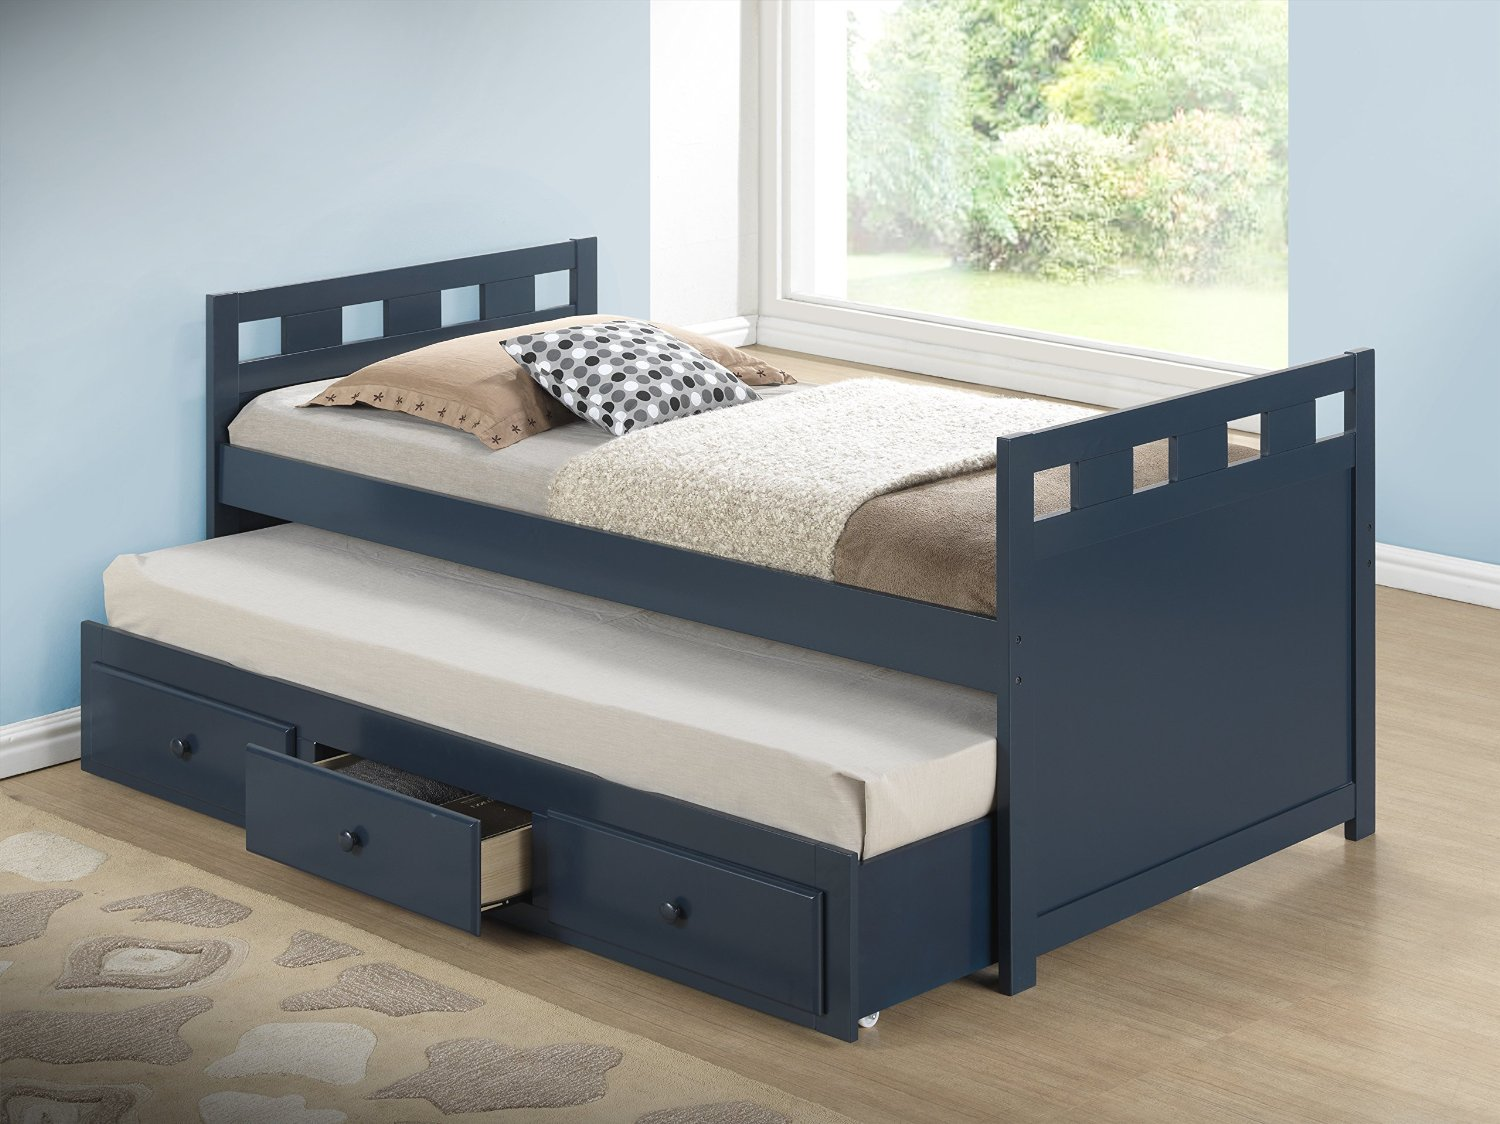 Twin bed with pull out slide out trundle bed underneath Best trundle bed